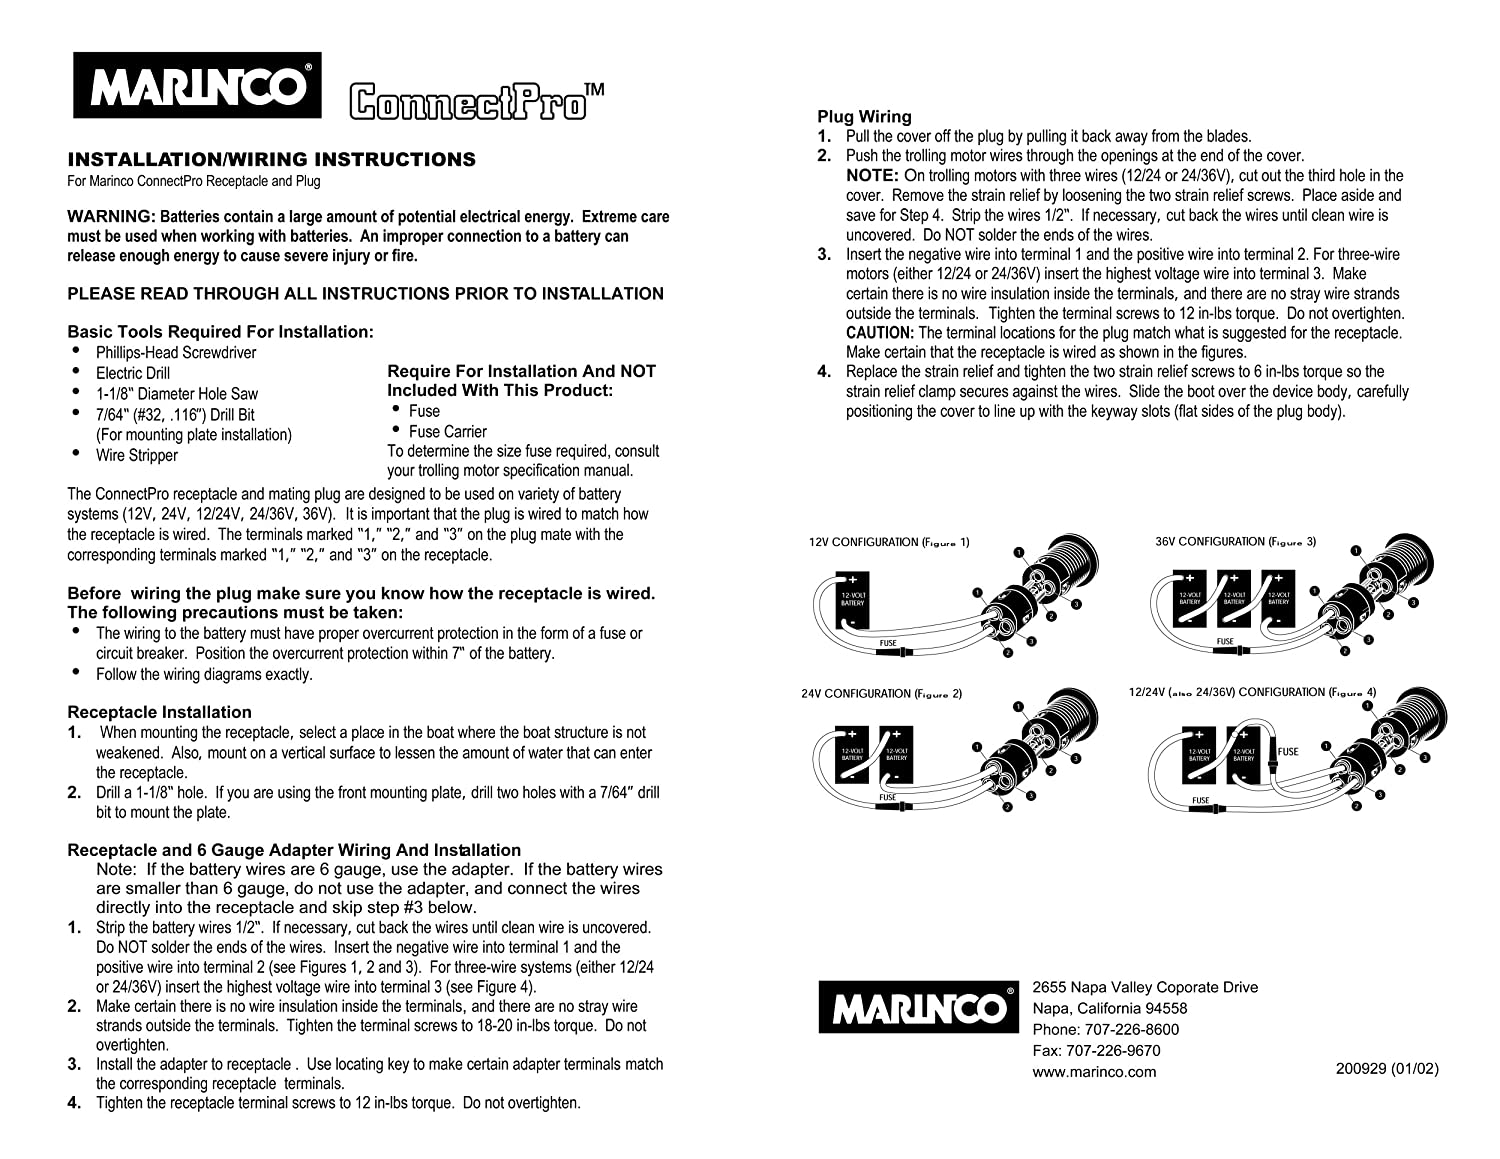 91ULQH2Yk6S._SL1500_ amazon com marinco 2 wire connectpro plug sports & outdoors marinco plug wiring diagram at gsmportal.co